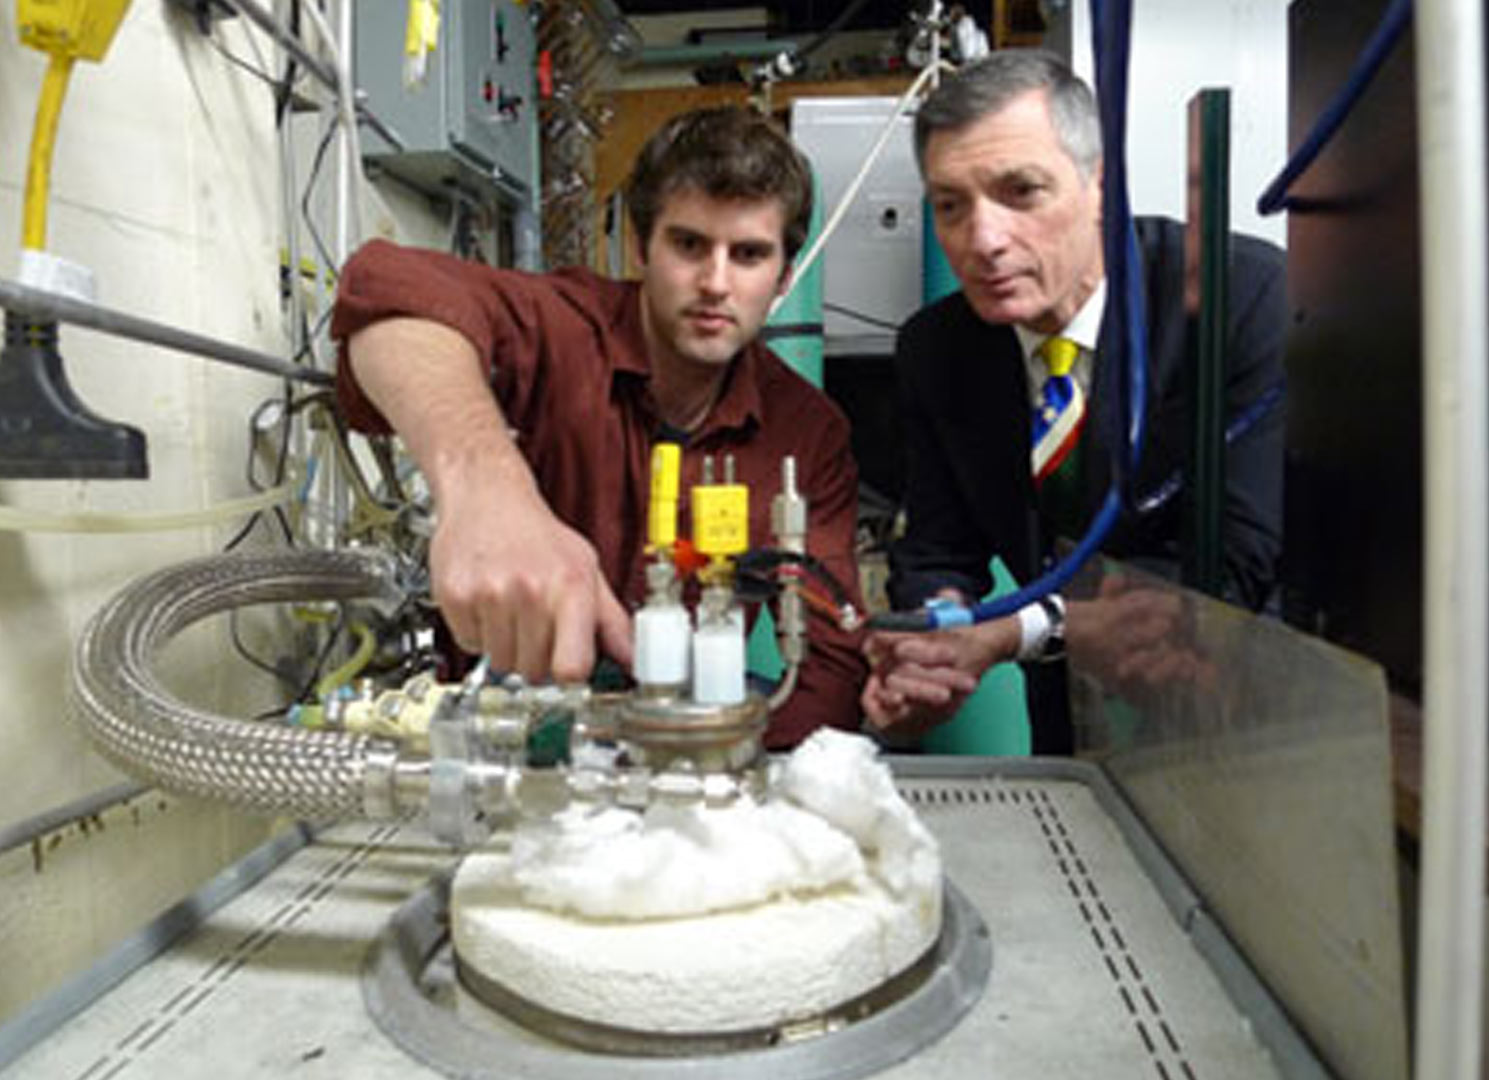 Don-Sadoway-testing with a student in a lab